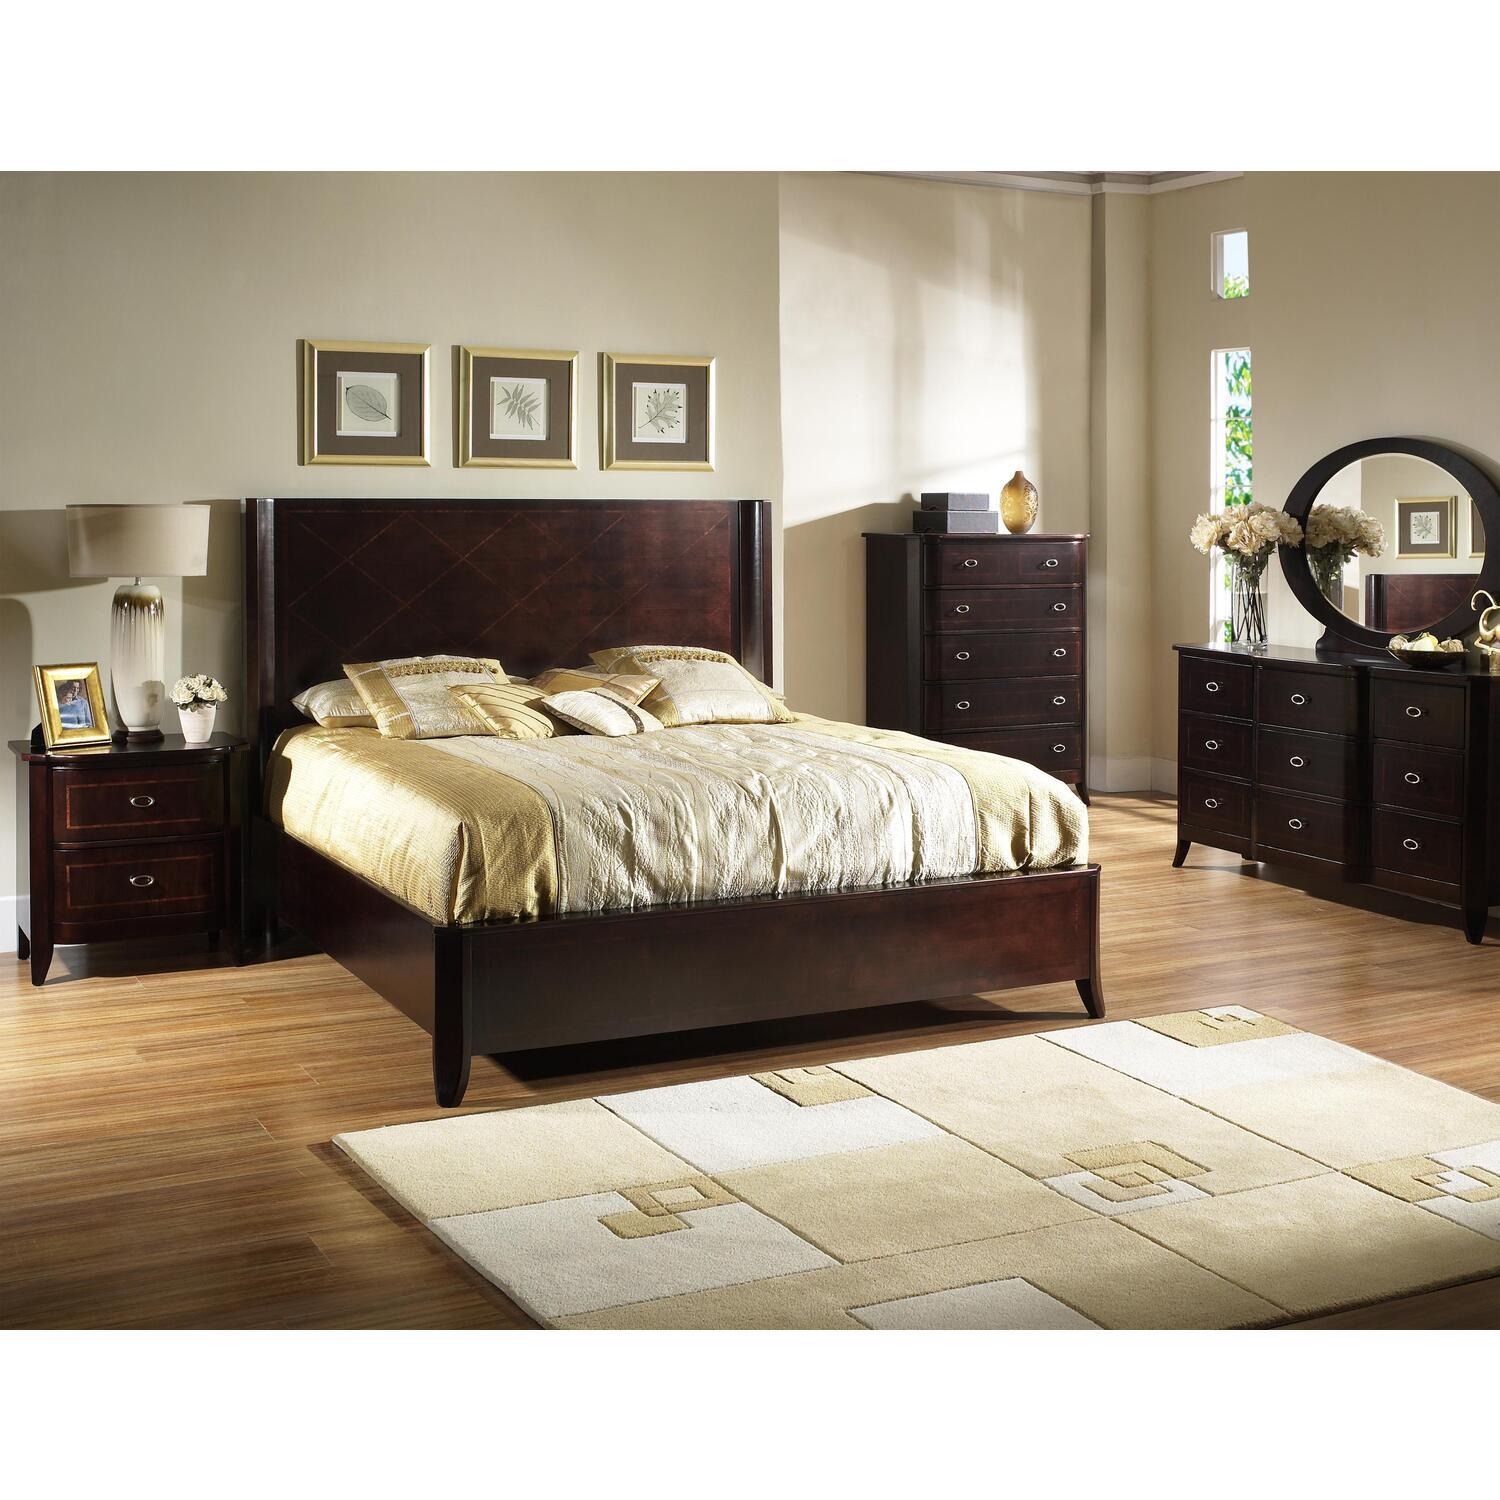 Somerton Crossroads King Panel Bed By Oj Commerce P411 52 1